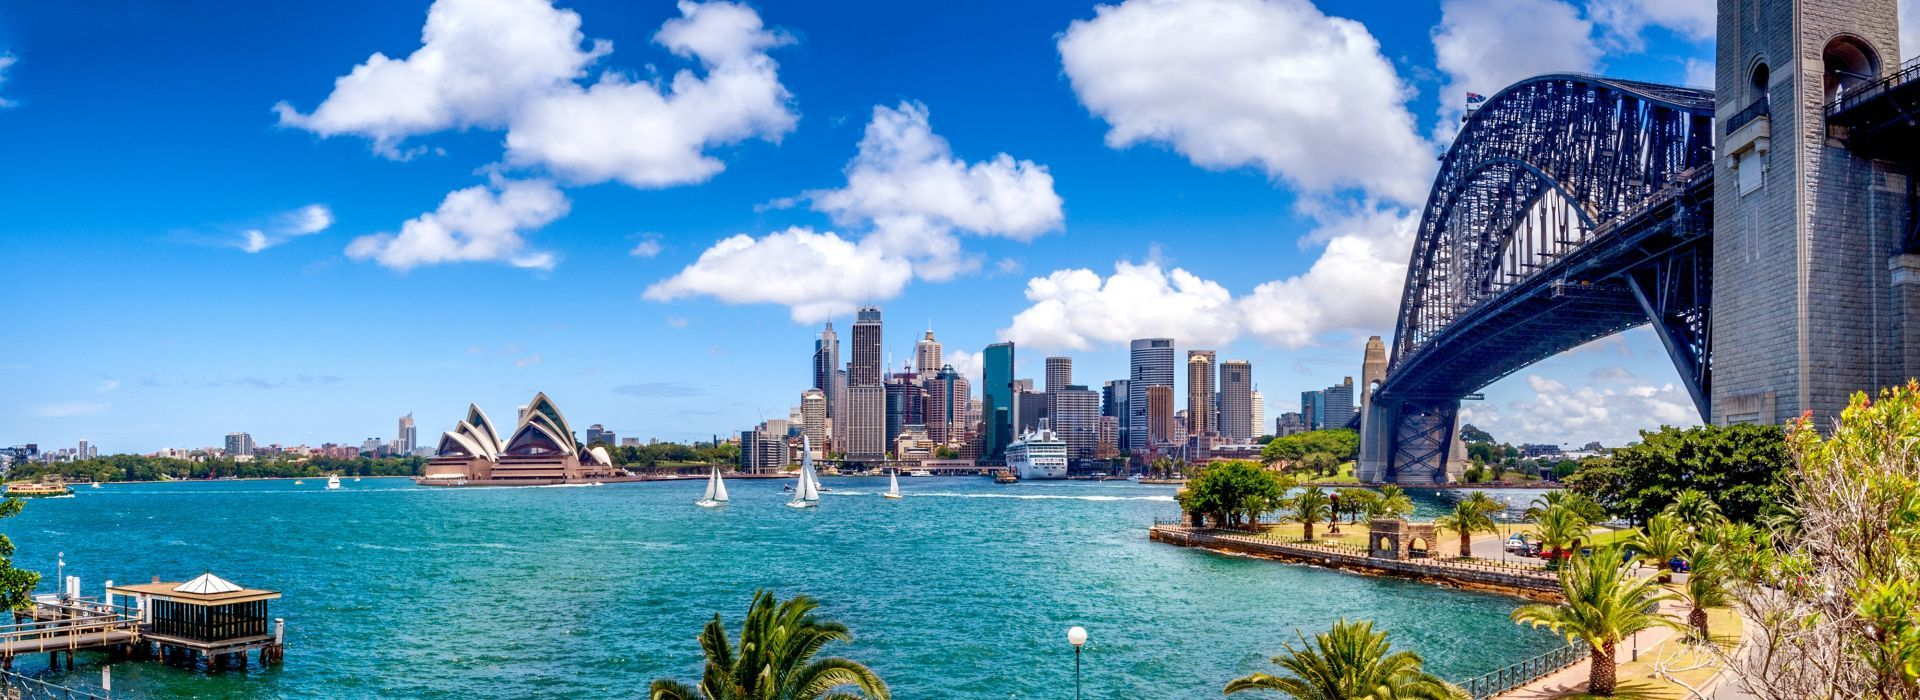 Sightseeing, attractions, culture and history Tours in Perth